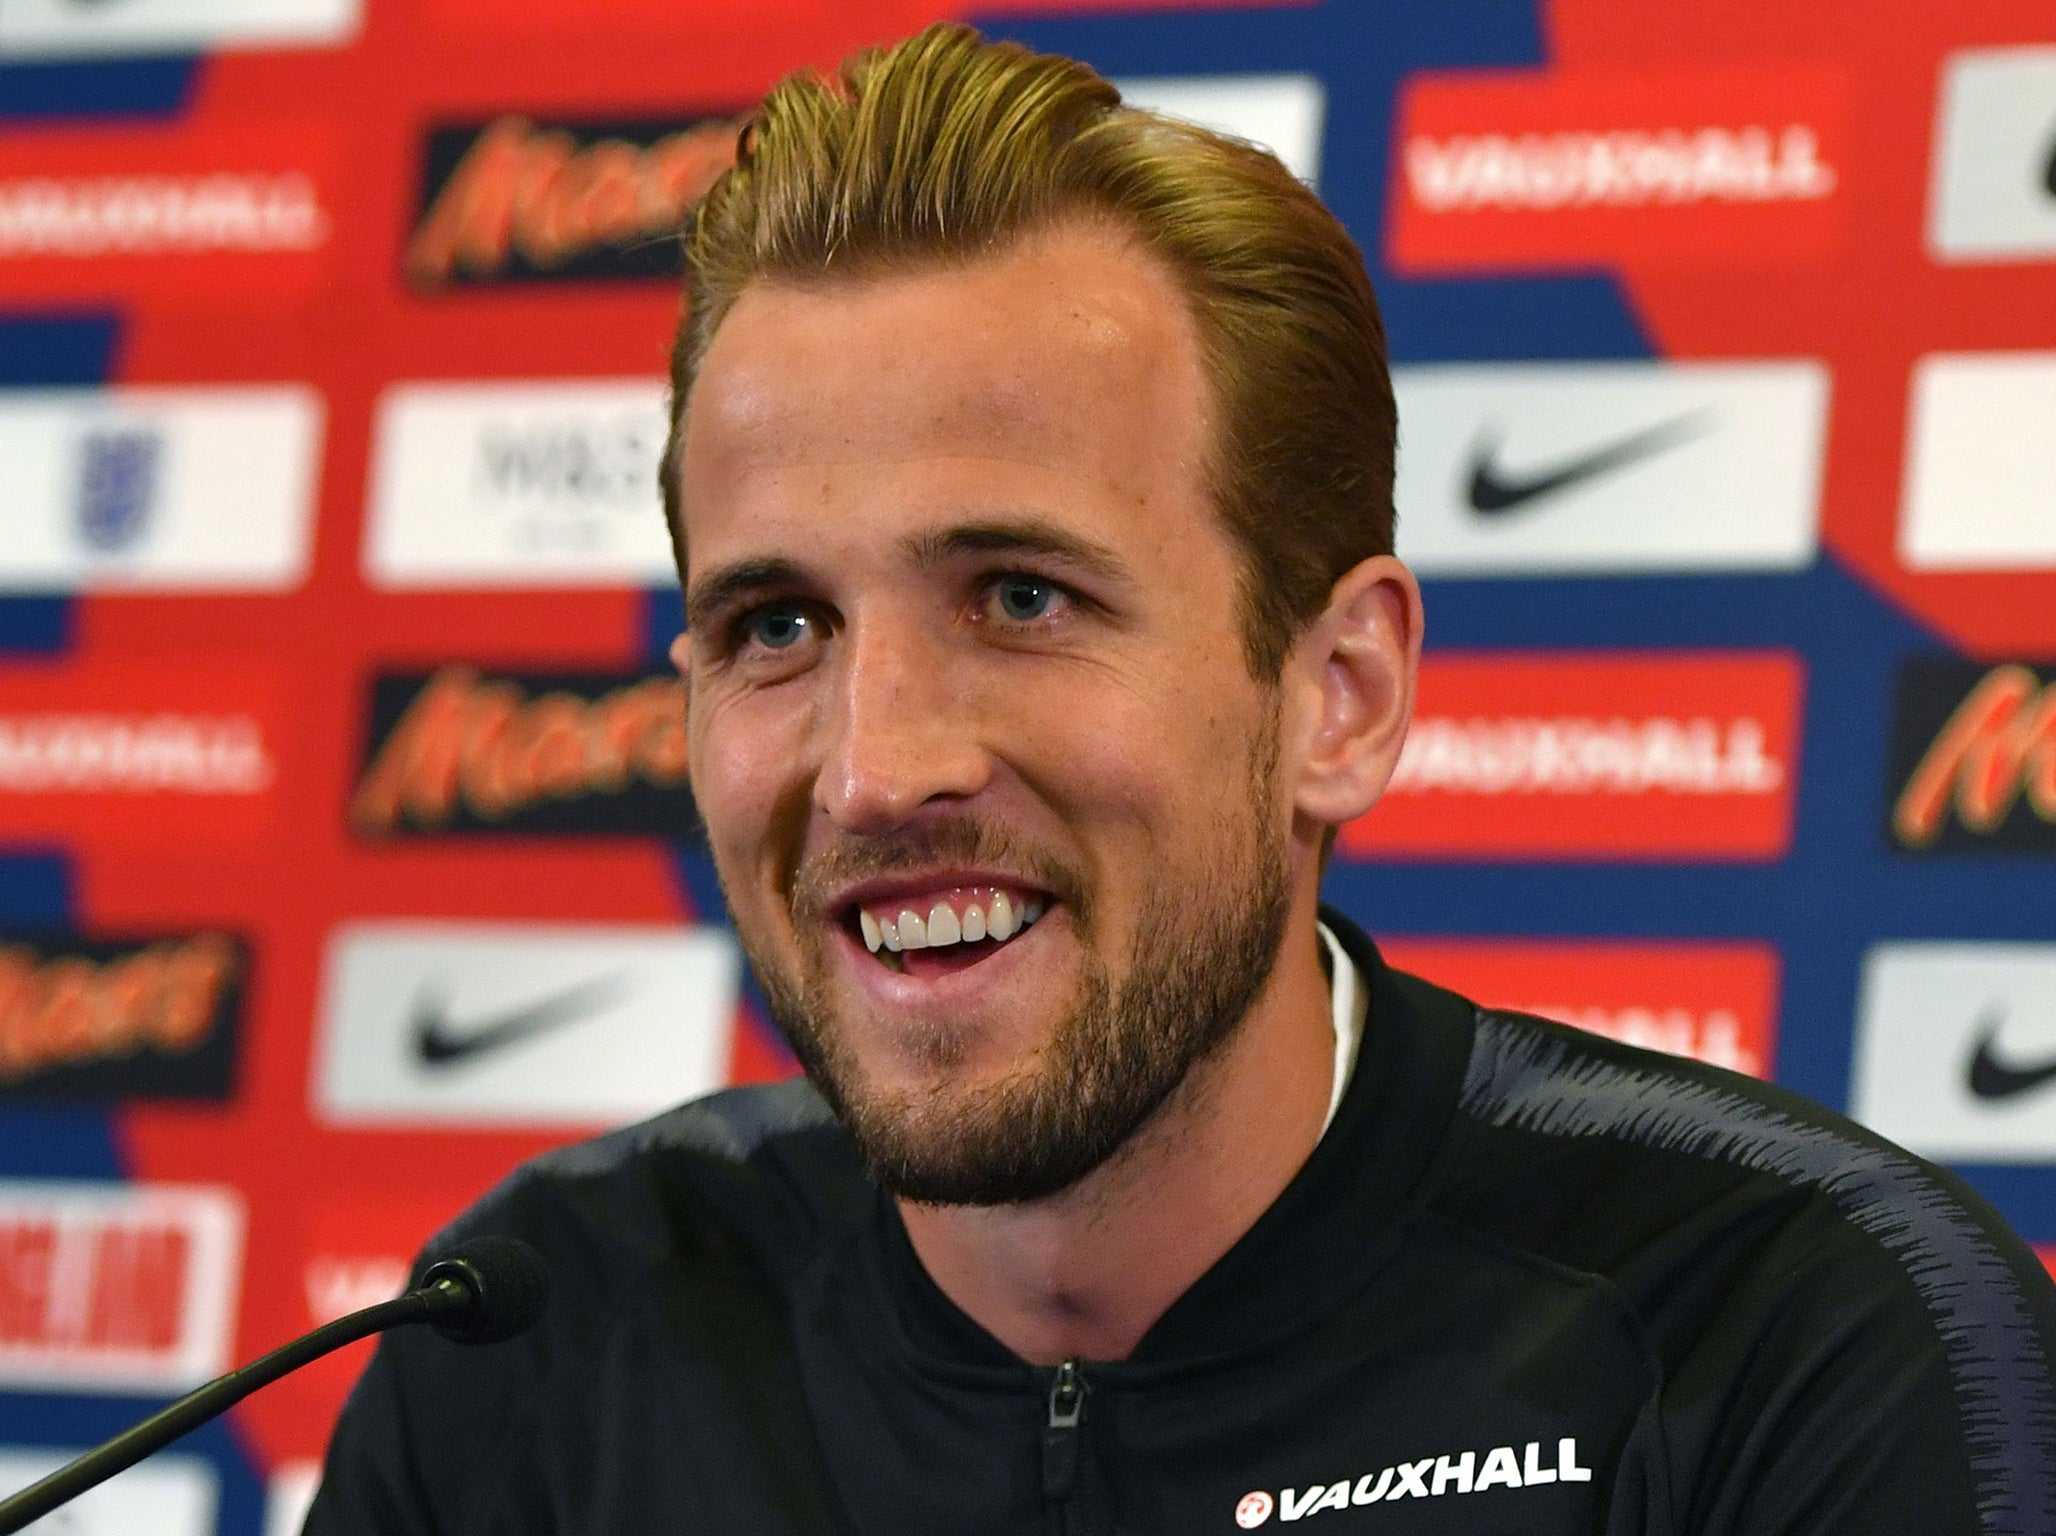 World Cup 2018: Harry Kane launches tenure as captain by insisting England can replicate 1966 triumph